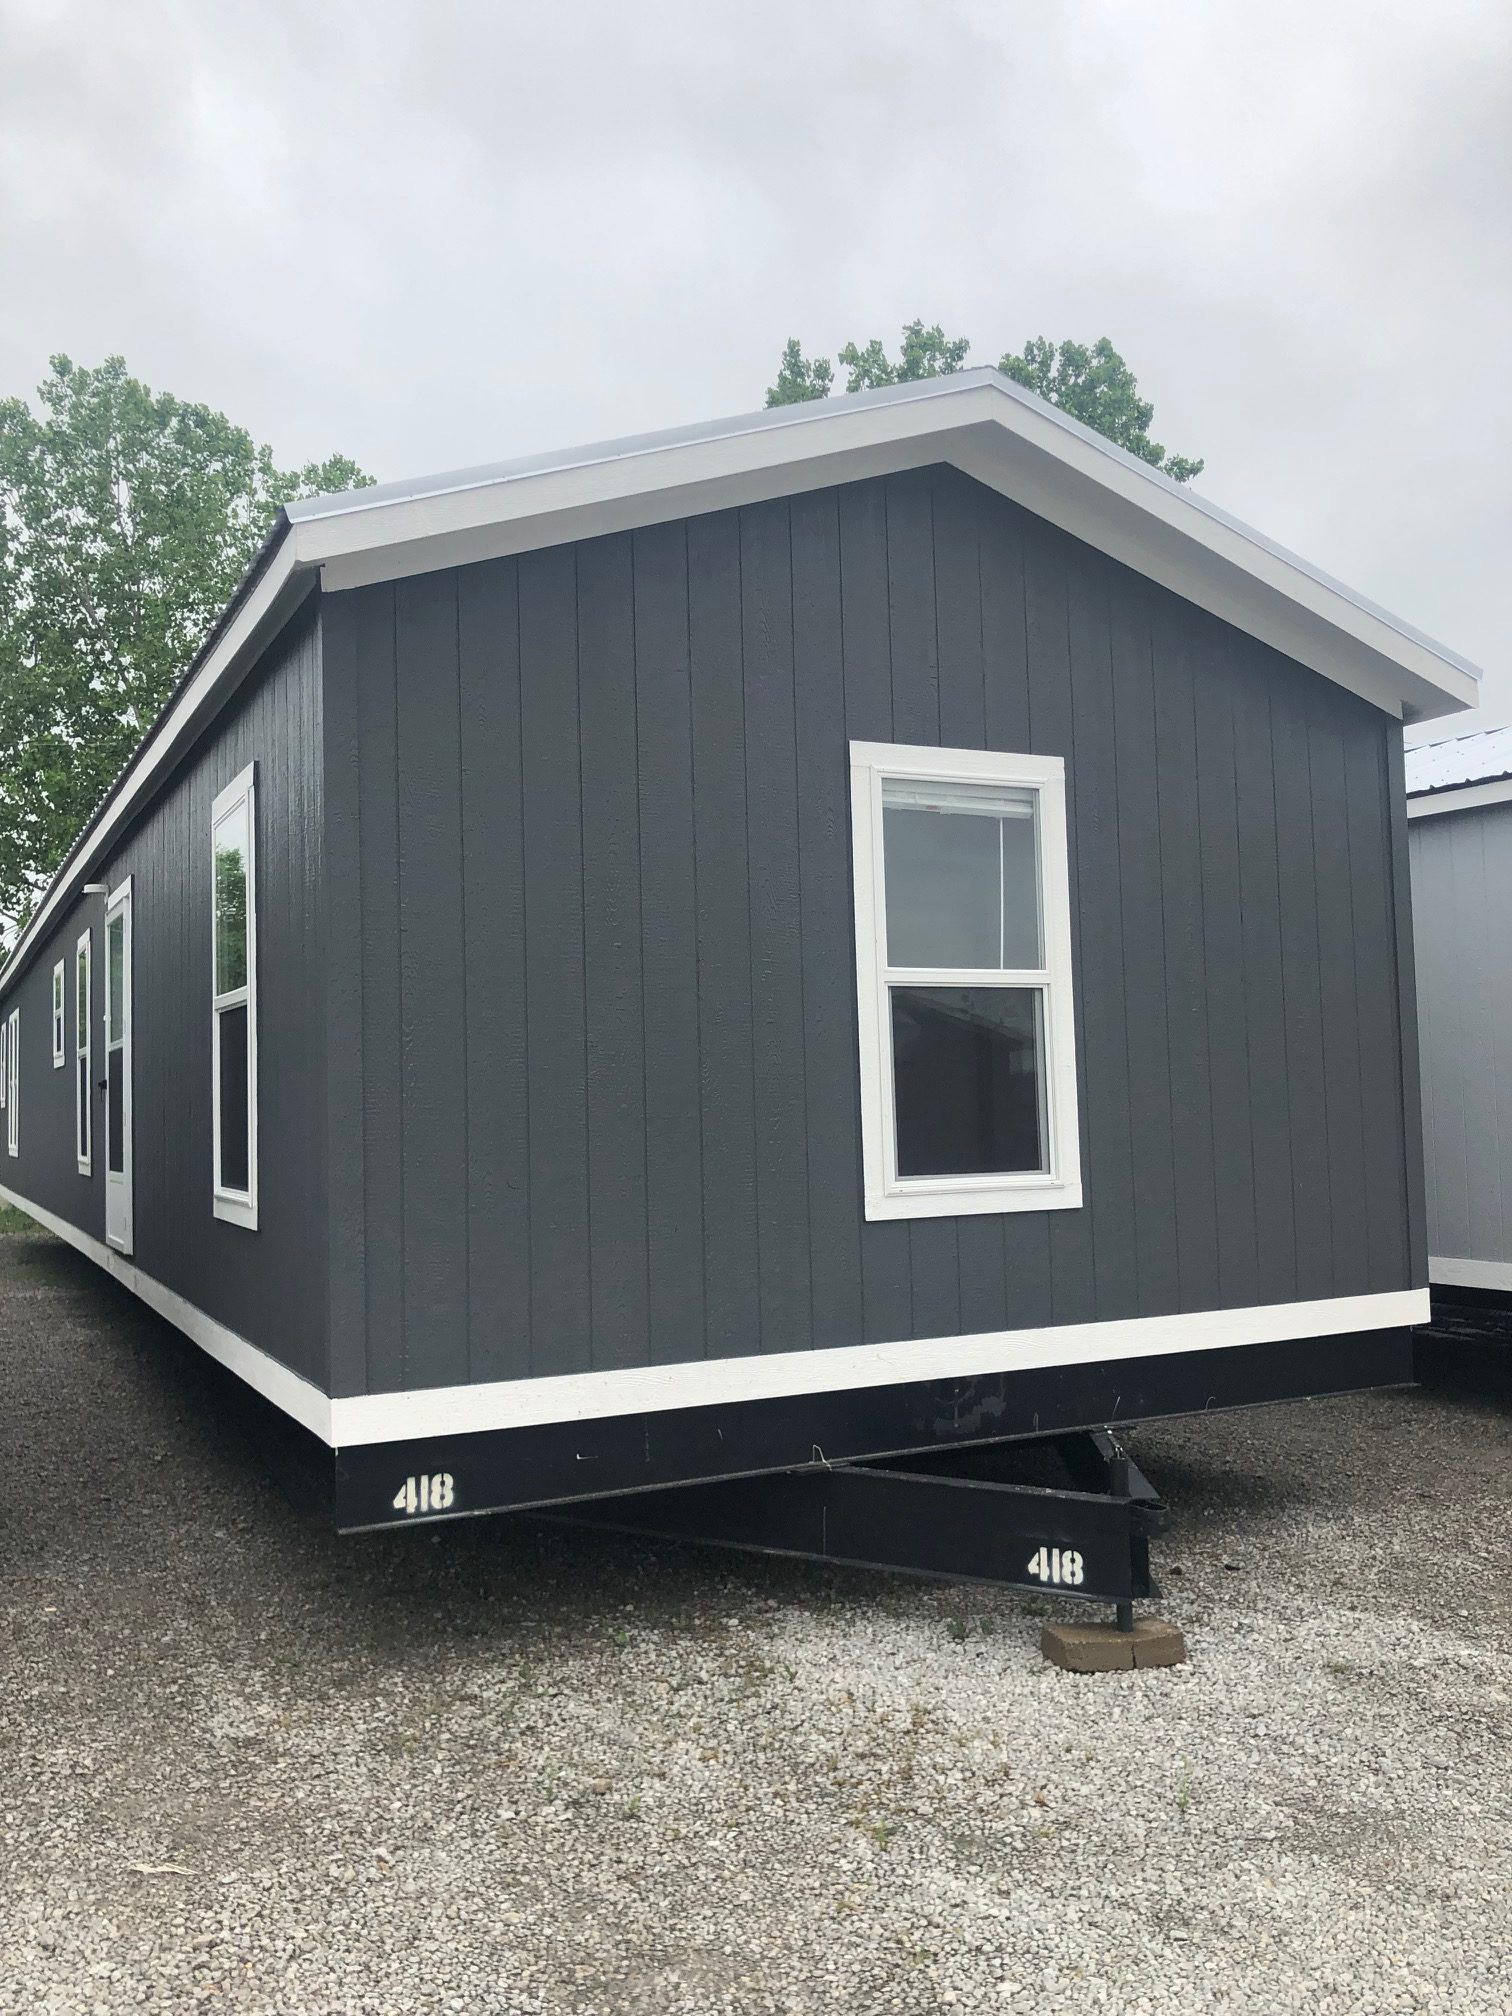 NEW MANUFACTURED HOMES - Aspen Manufactured HomesAspen ... on container home roof shed, mobile home frame shed, flat roof shed, duplex roof shed, cottage roof shed, saltbox roof shed, barn roof shed,